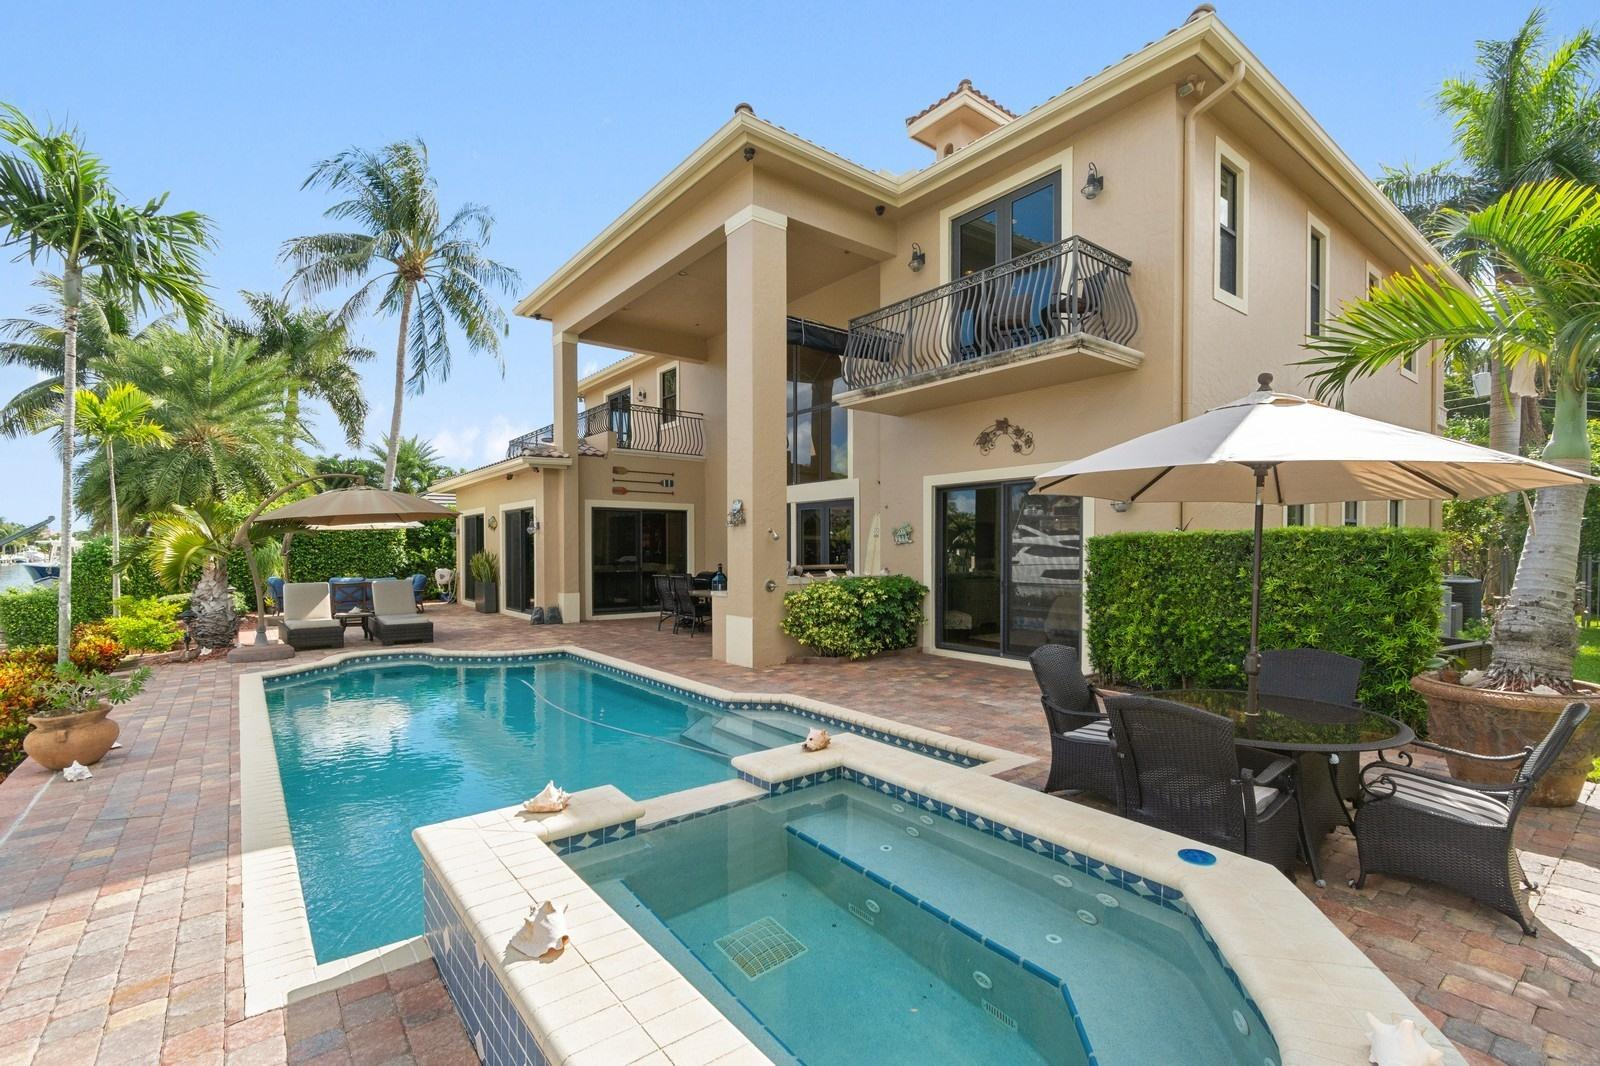 VENETIAN ISLES HOMES FOR SALE